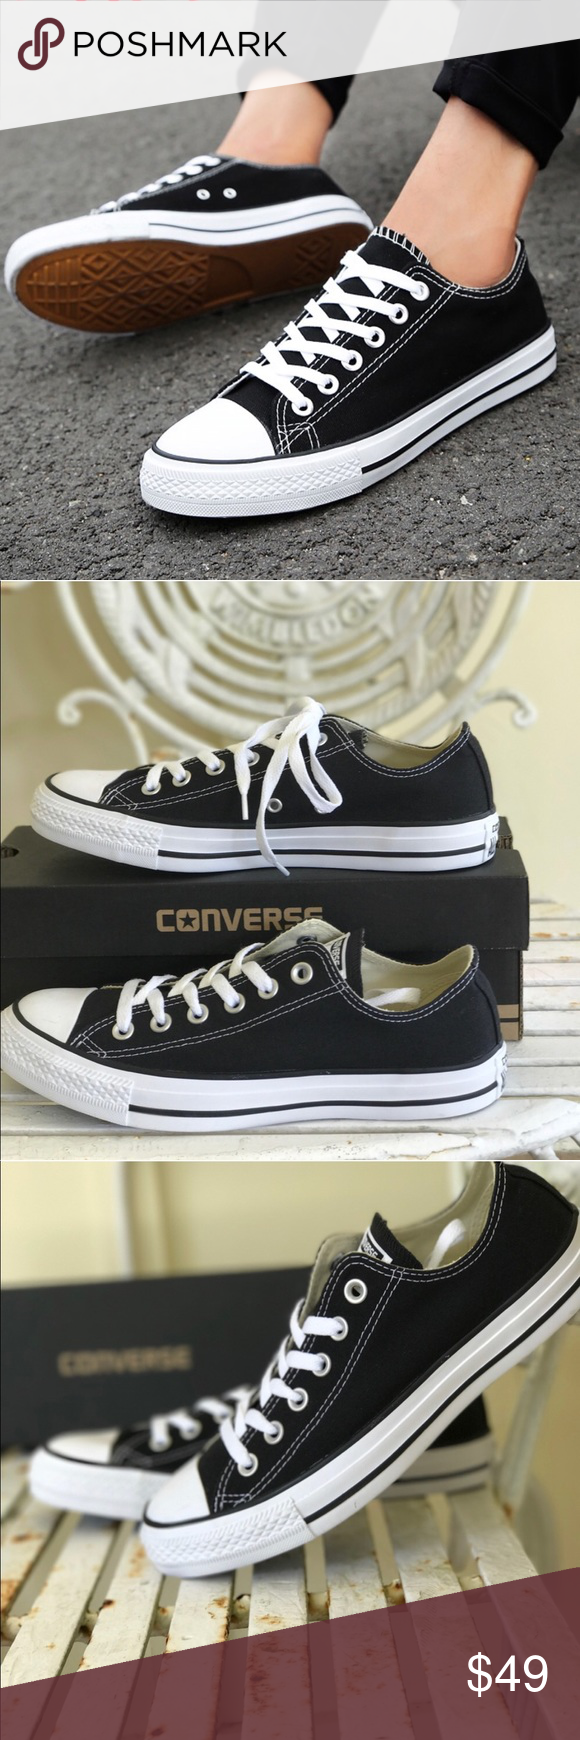 Converse AllStar Adult Fabric Black LT M AUTHENTIC Brand new with box.  Price is firm f4a243d97